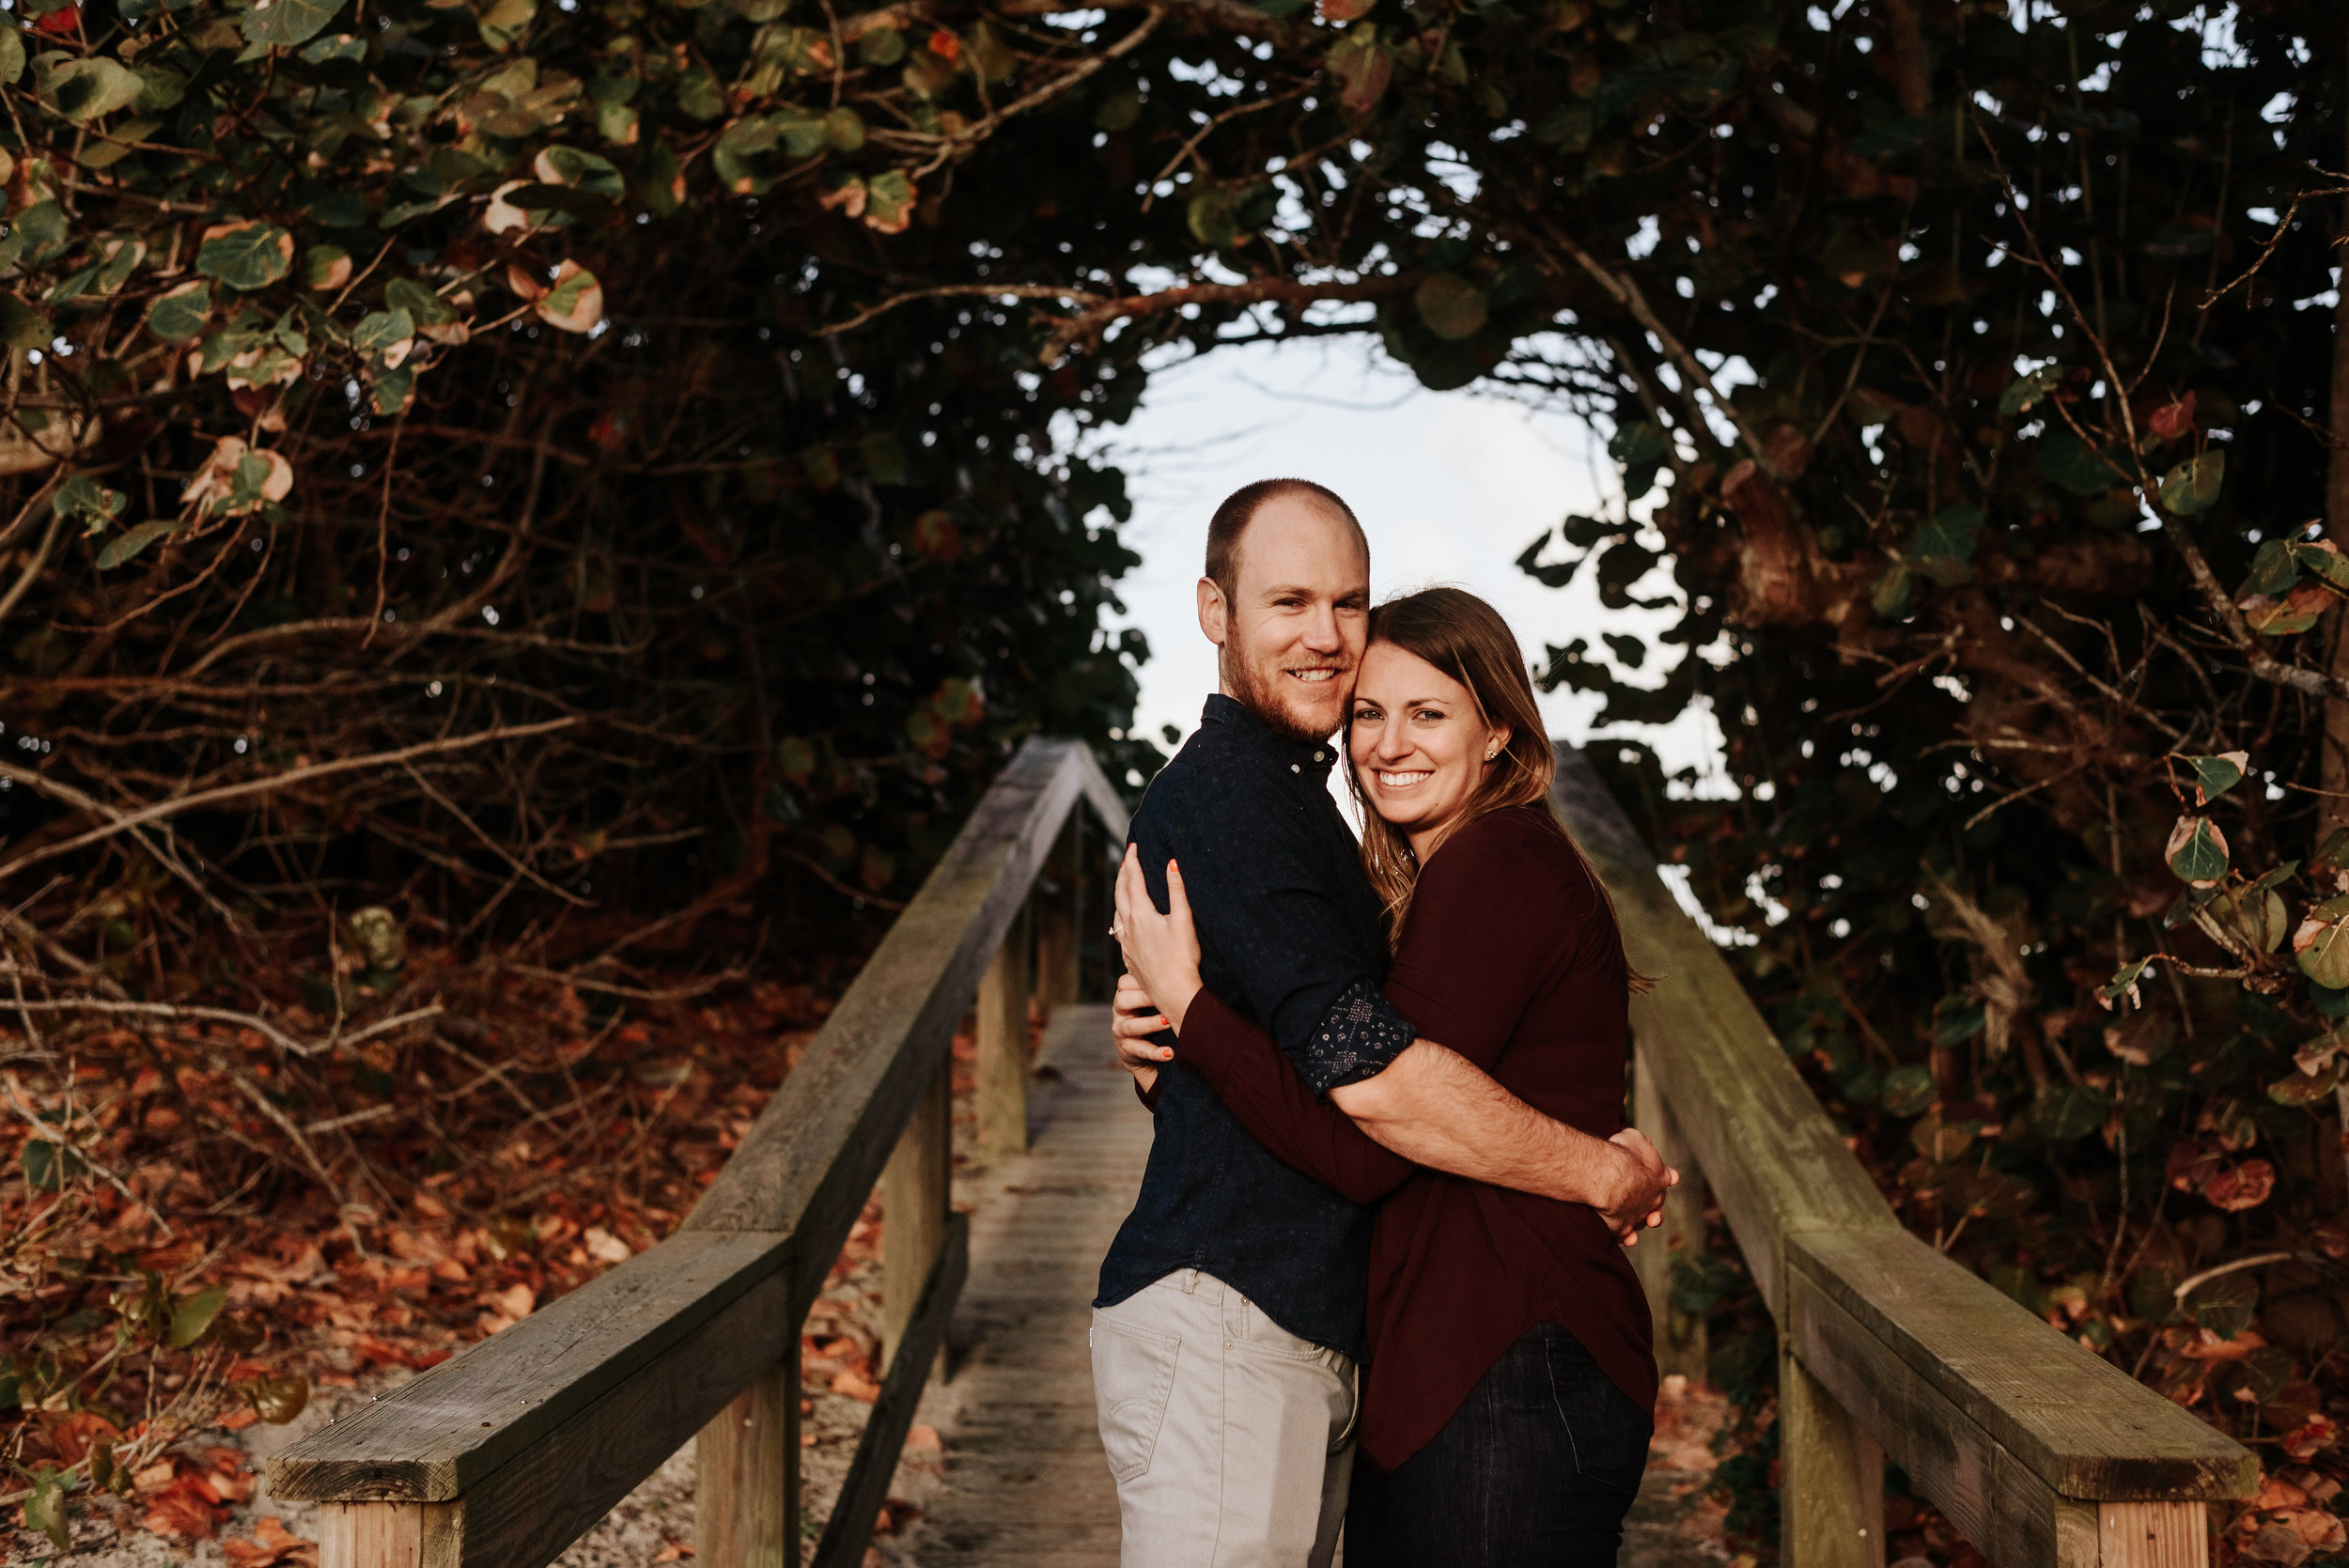 Courtney_Luke_Wedding_Engagement_Session_Cocoa_Beach_Florida_Photography_by_V_4443.jpg